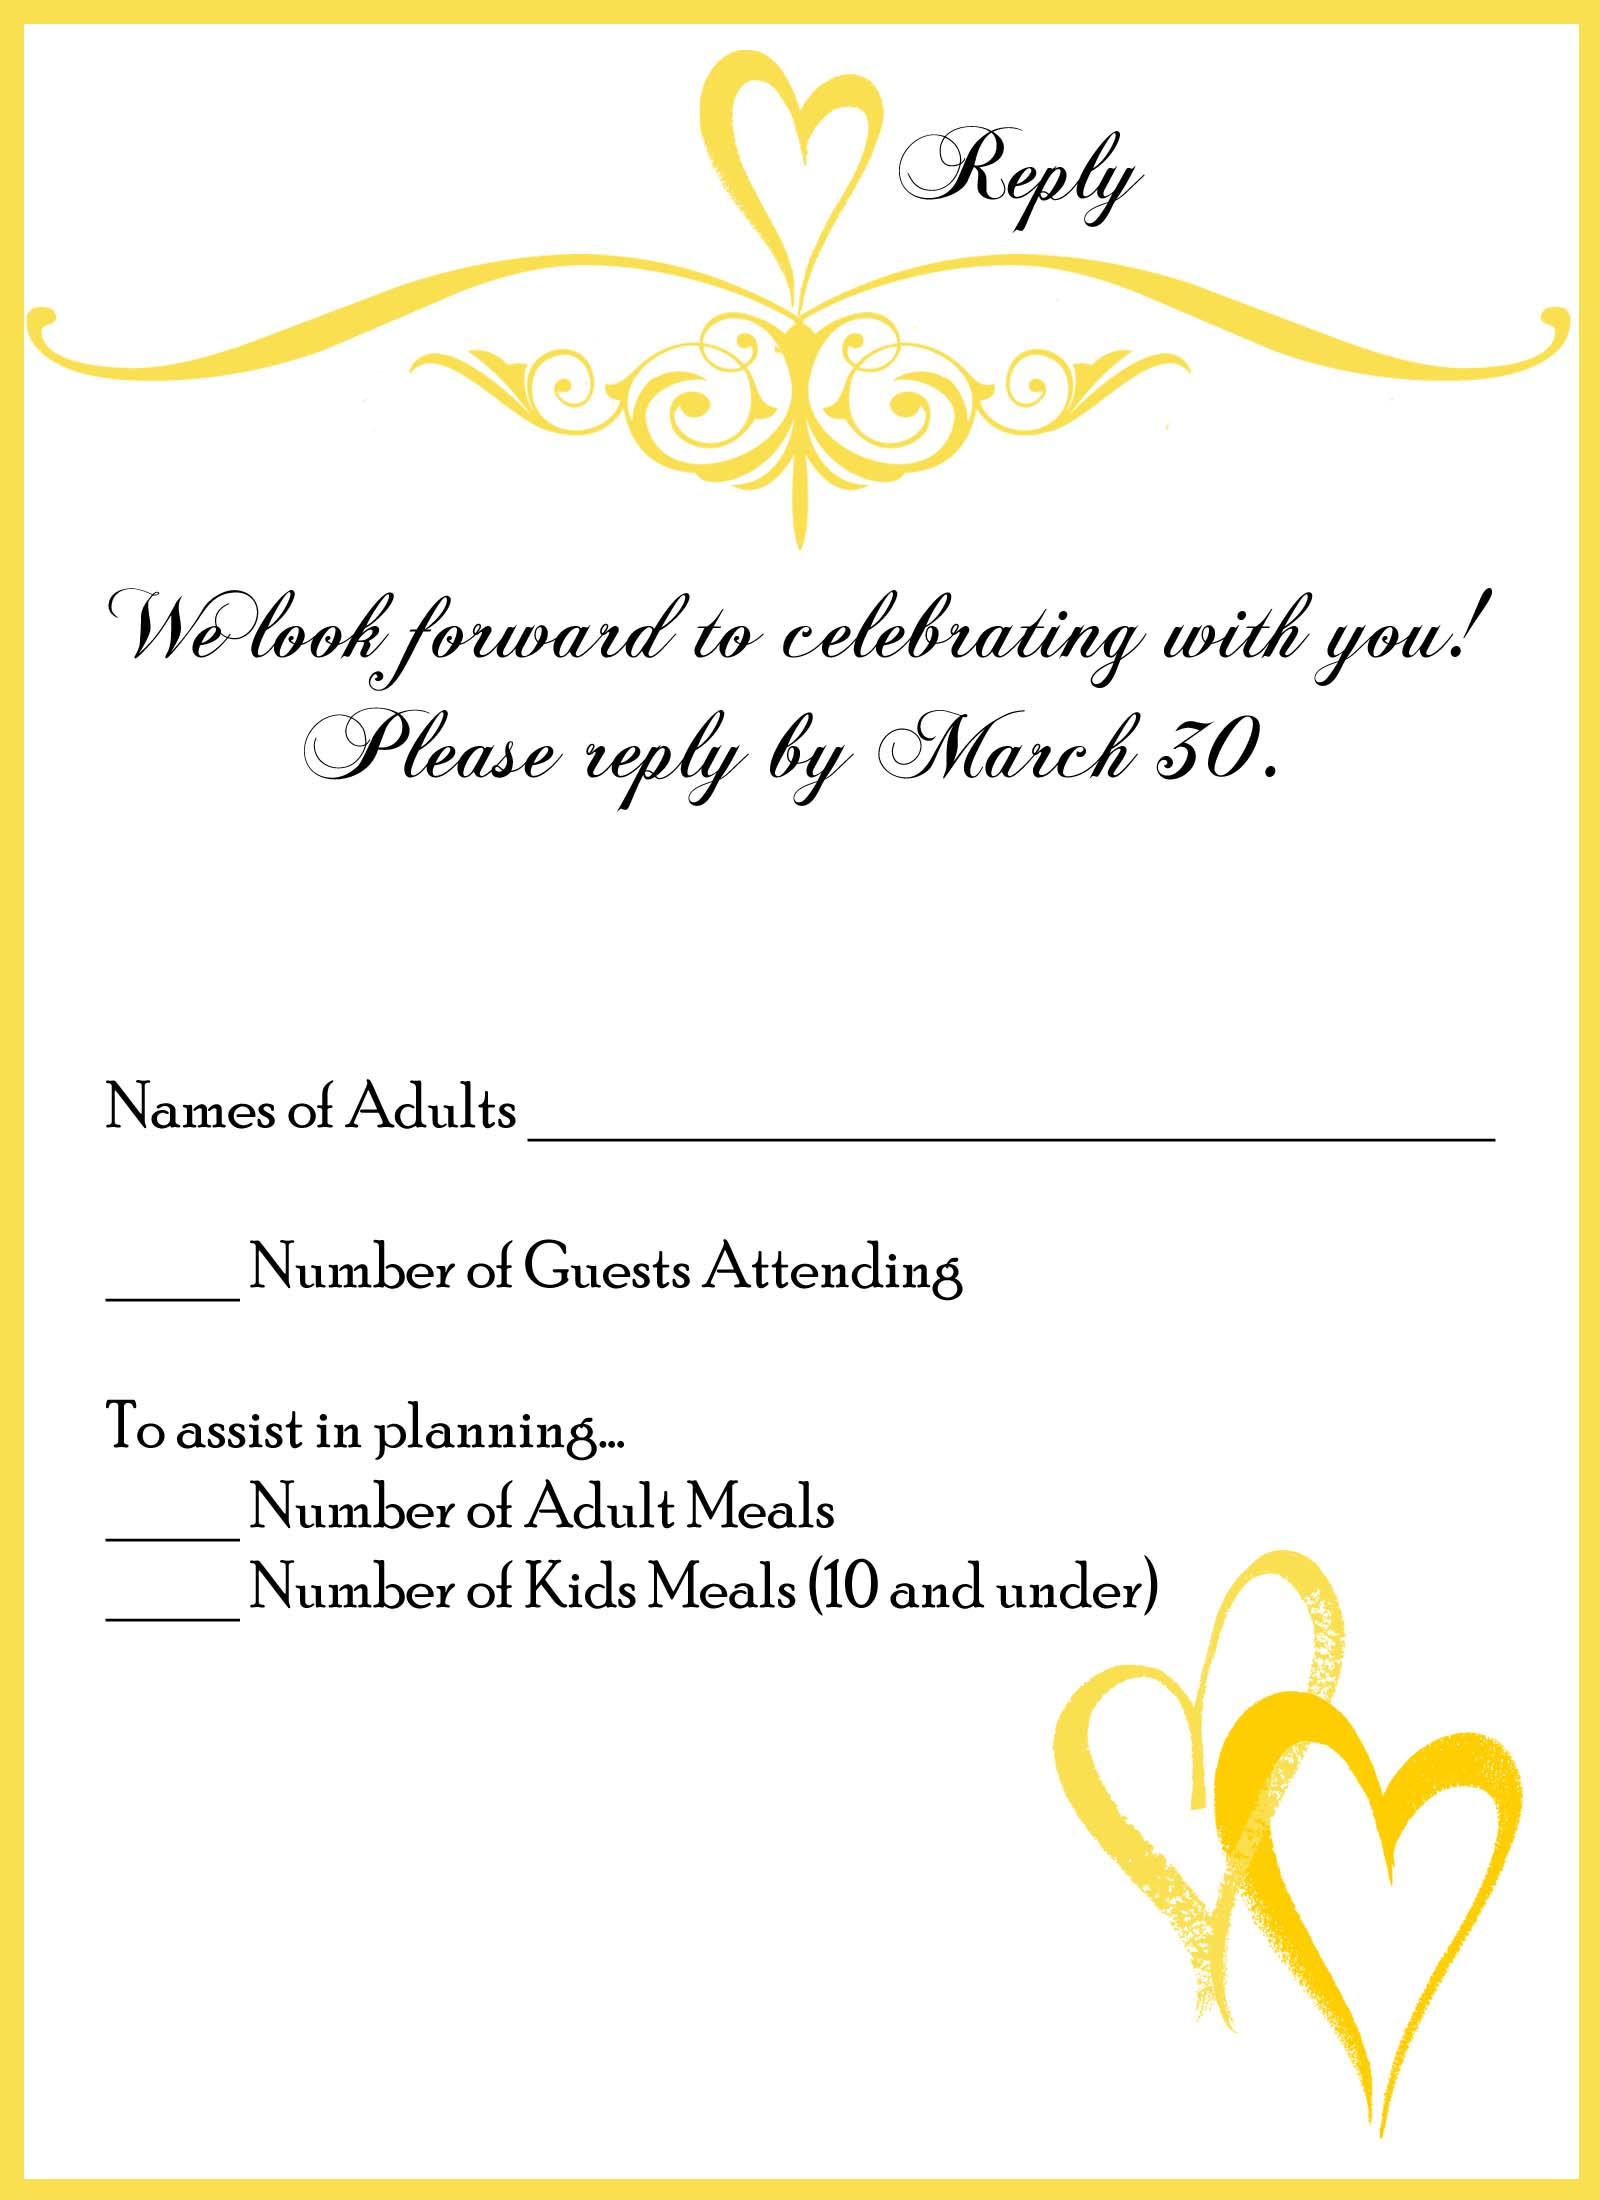 How To Include Directions In Invitations